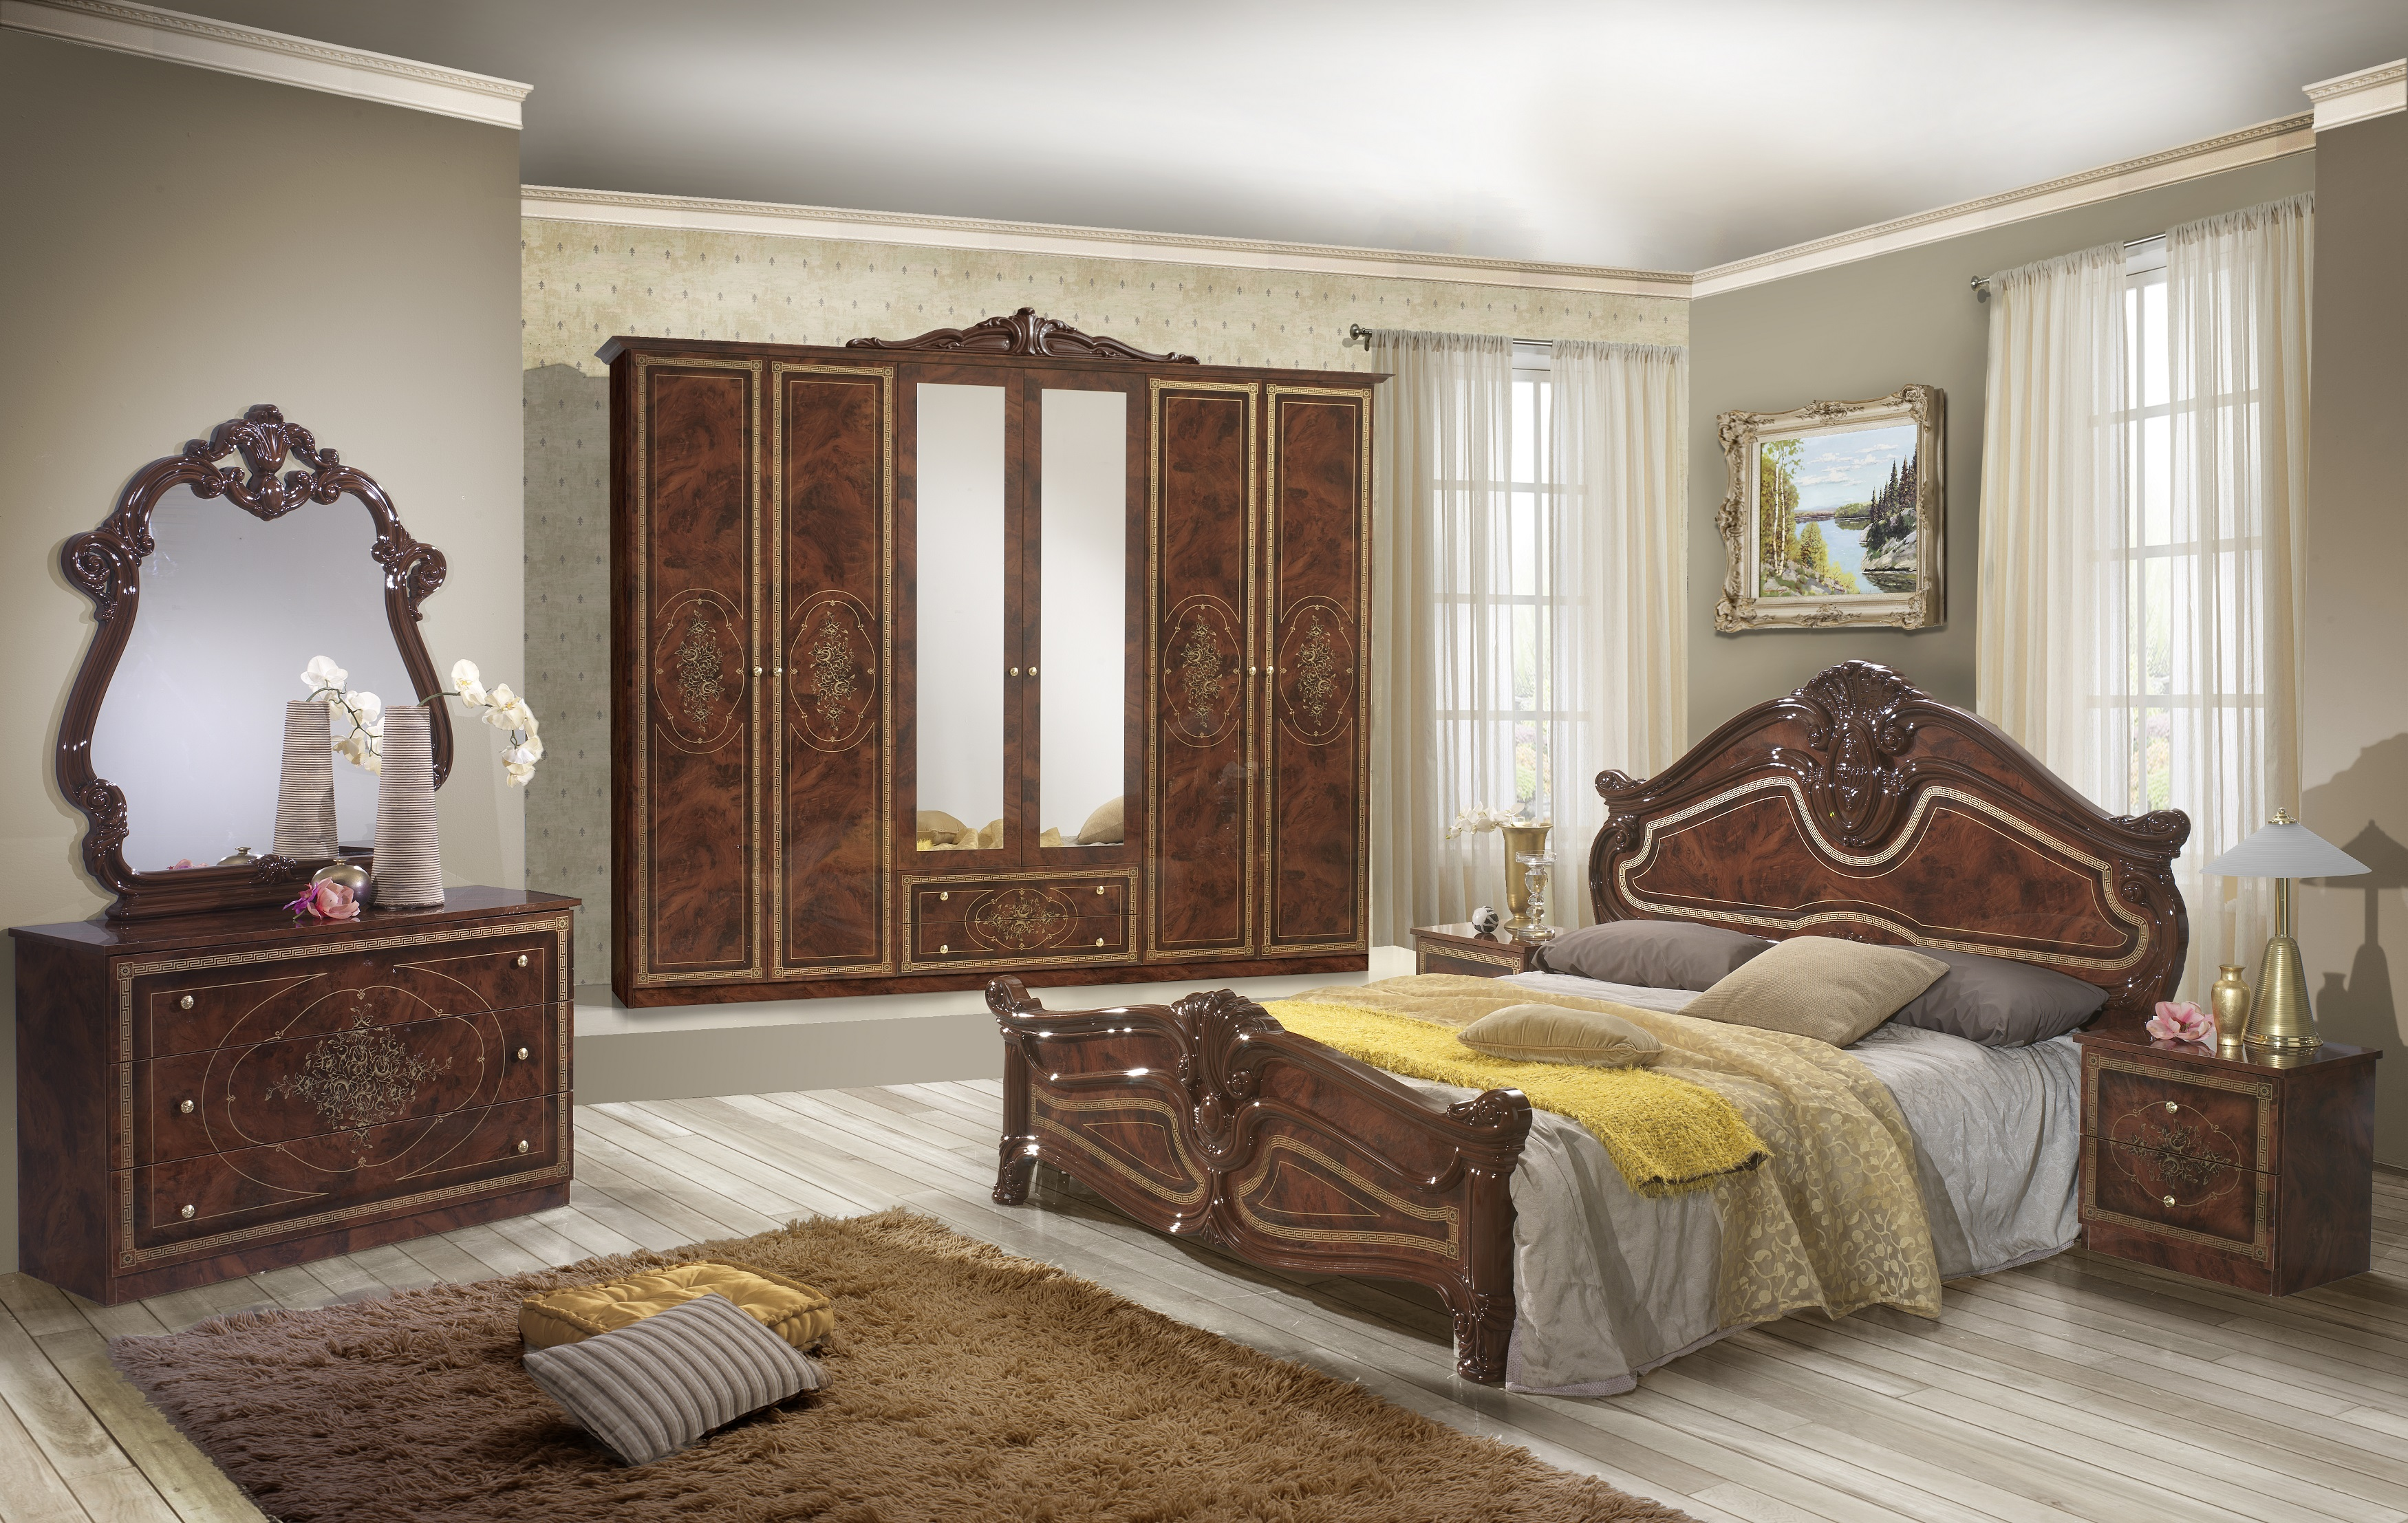 schlafzimmer amalia in beige creme klassik italienisch dh amf eco rb. Black Bedroom Furniture Sets. Home Design Ideas